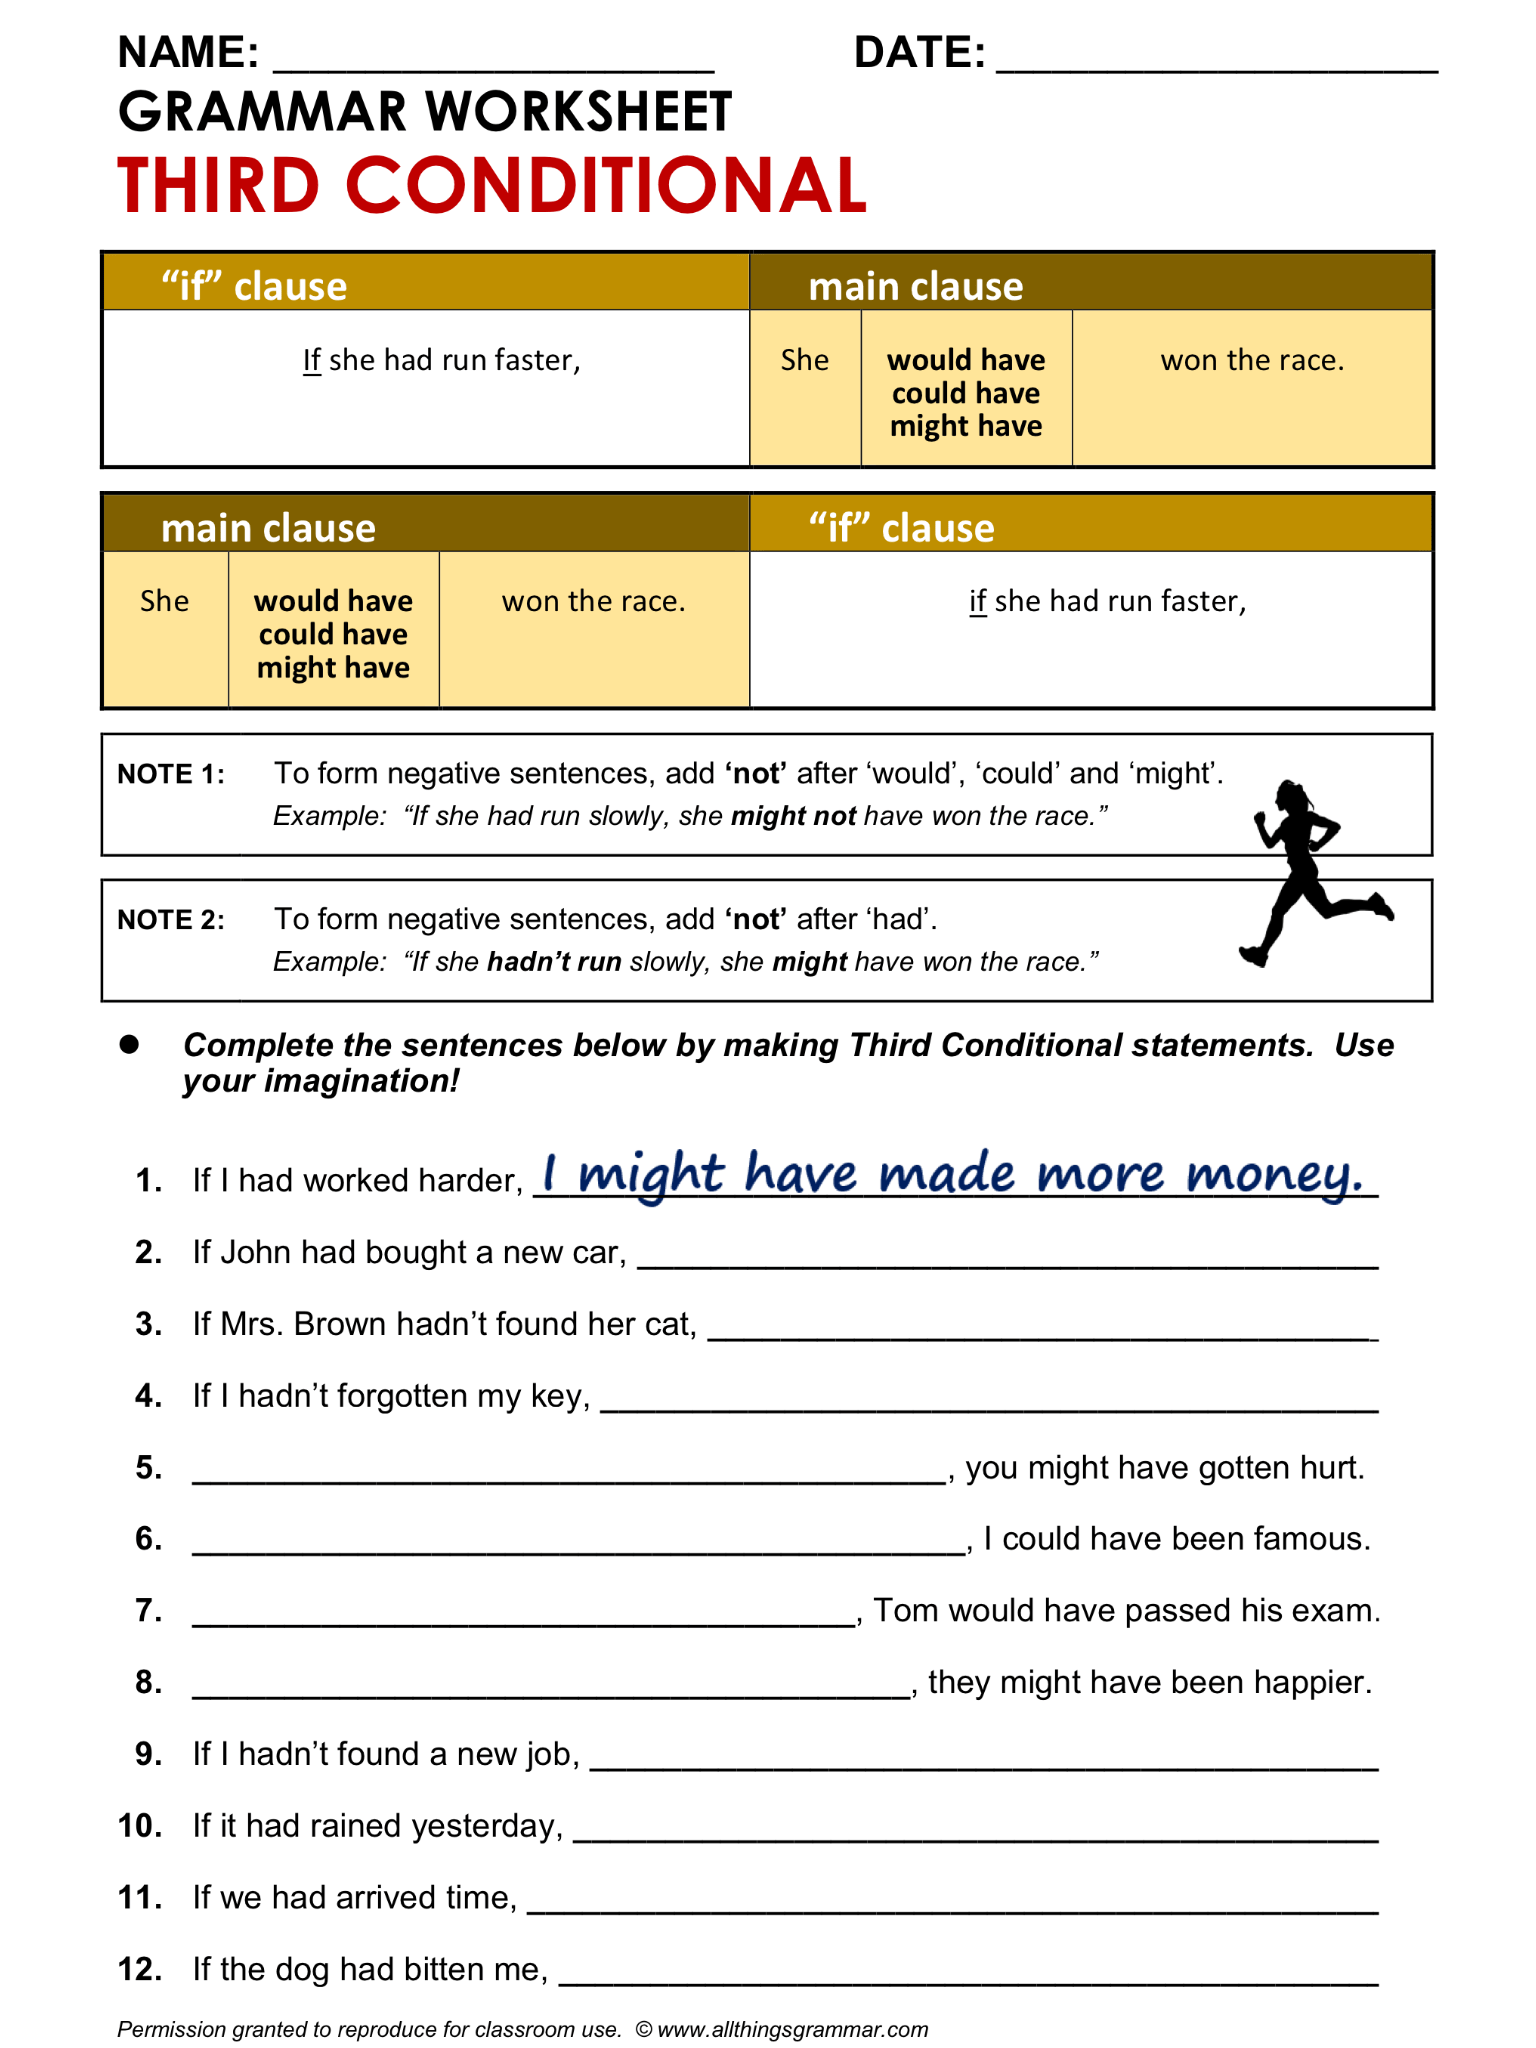 English Grammar Worksheet Third Conditional 1 2